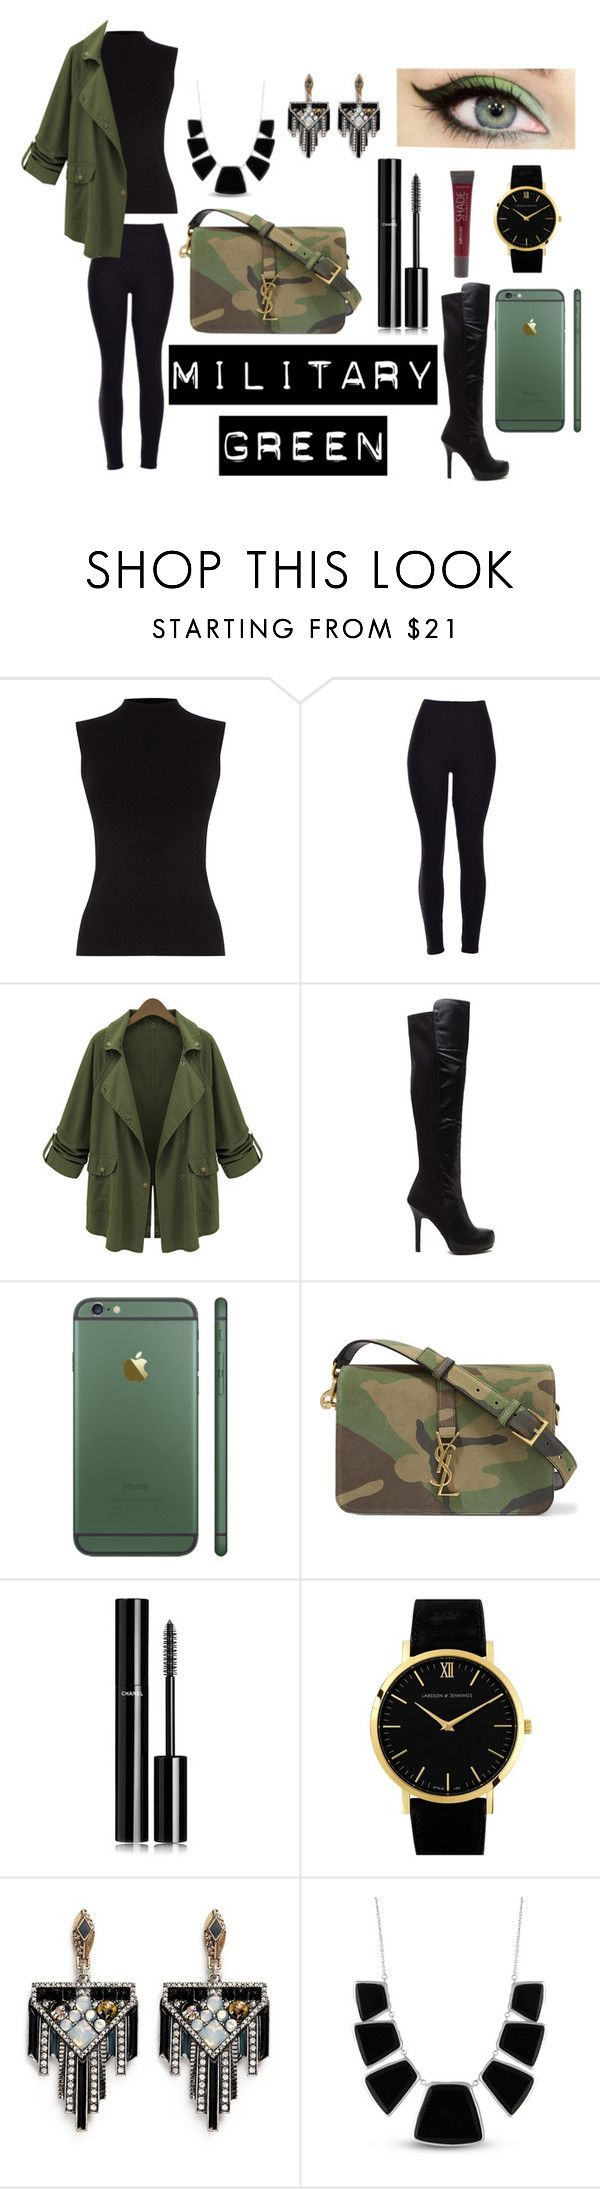 """""""Army Green"""" by miyalovefashion ❤ liked on Polyvore featuring Oasis, Yves Saint Laurent, Chanel, Larsson & Jennings, Lulu Frost, Karen Kane and Lane Bryant"""